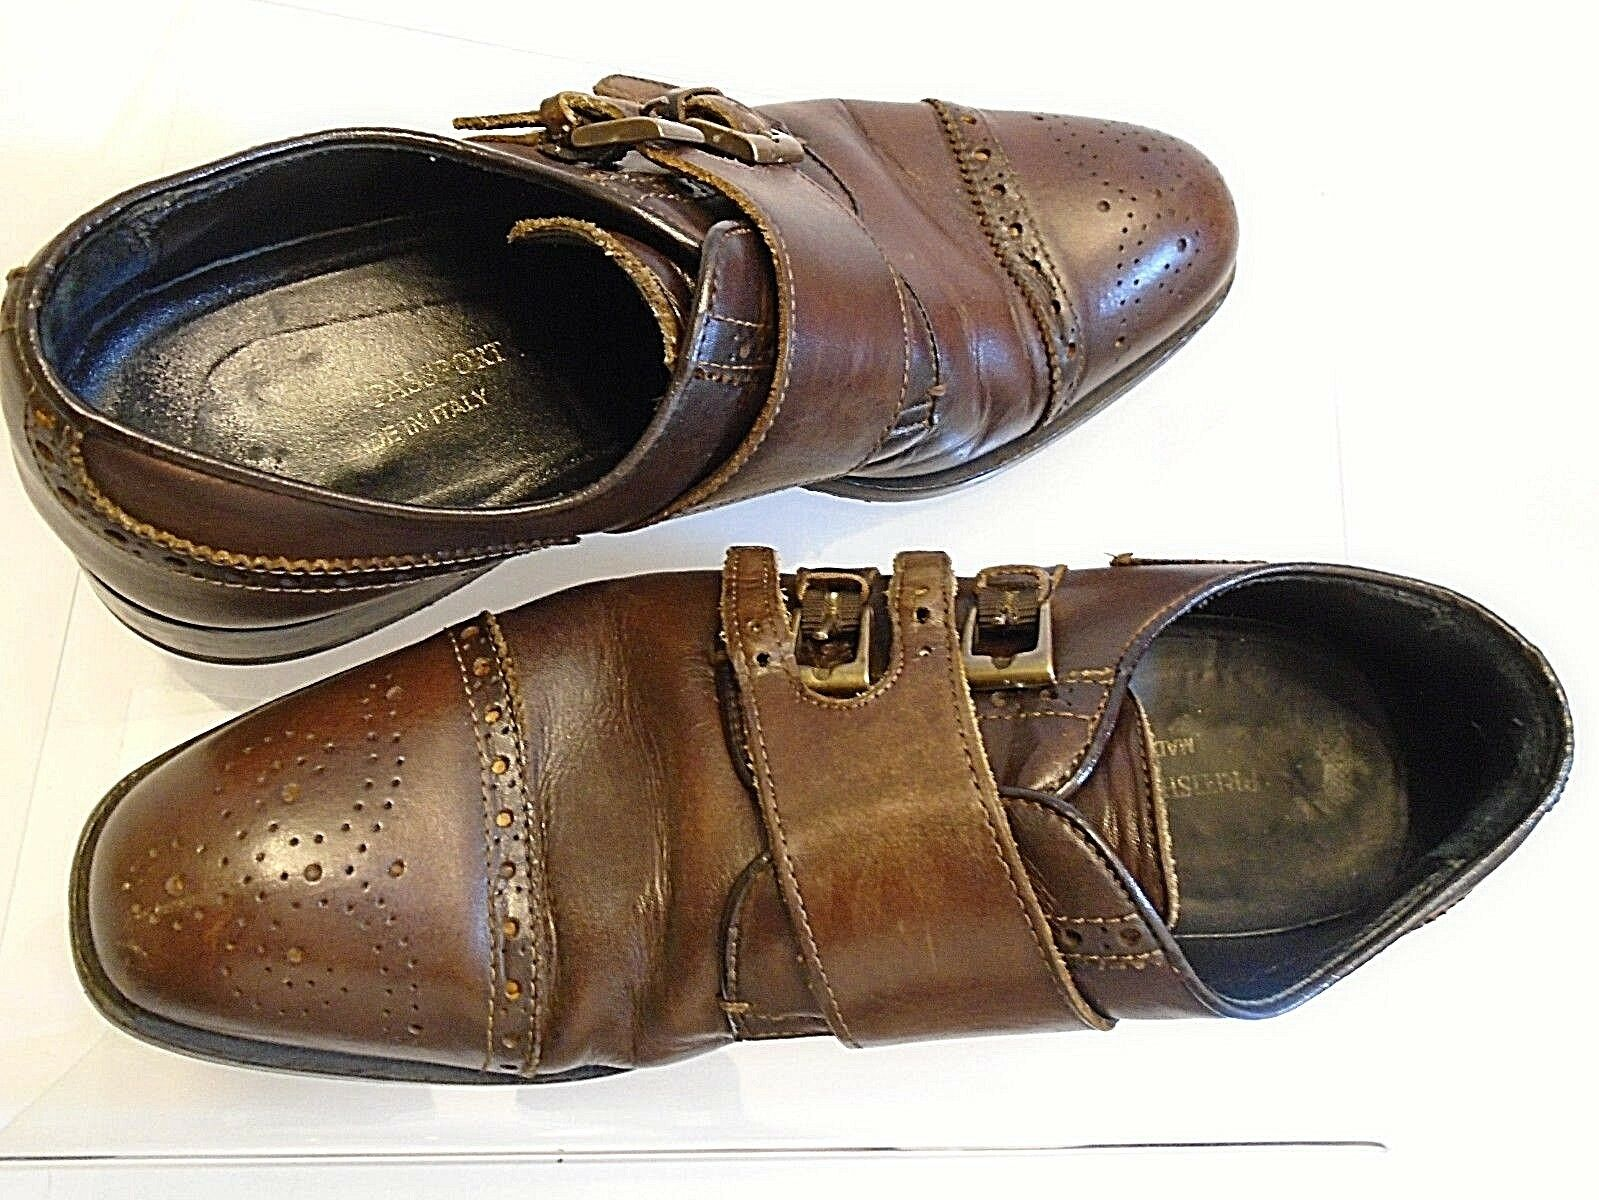 British Passport herren braun cap toe double monk strap leather schuhe Größe 40 EUR